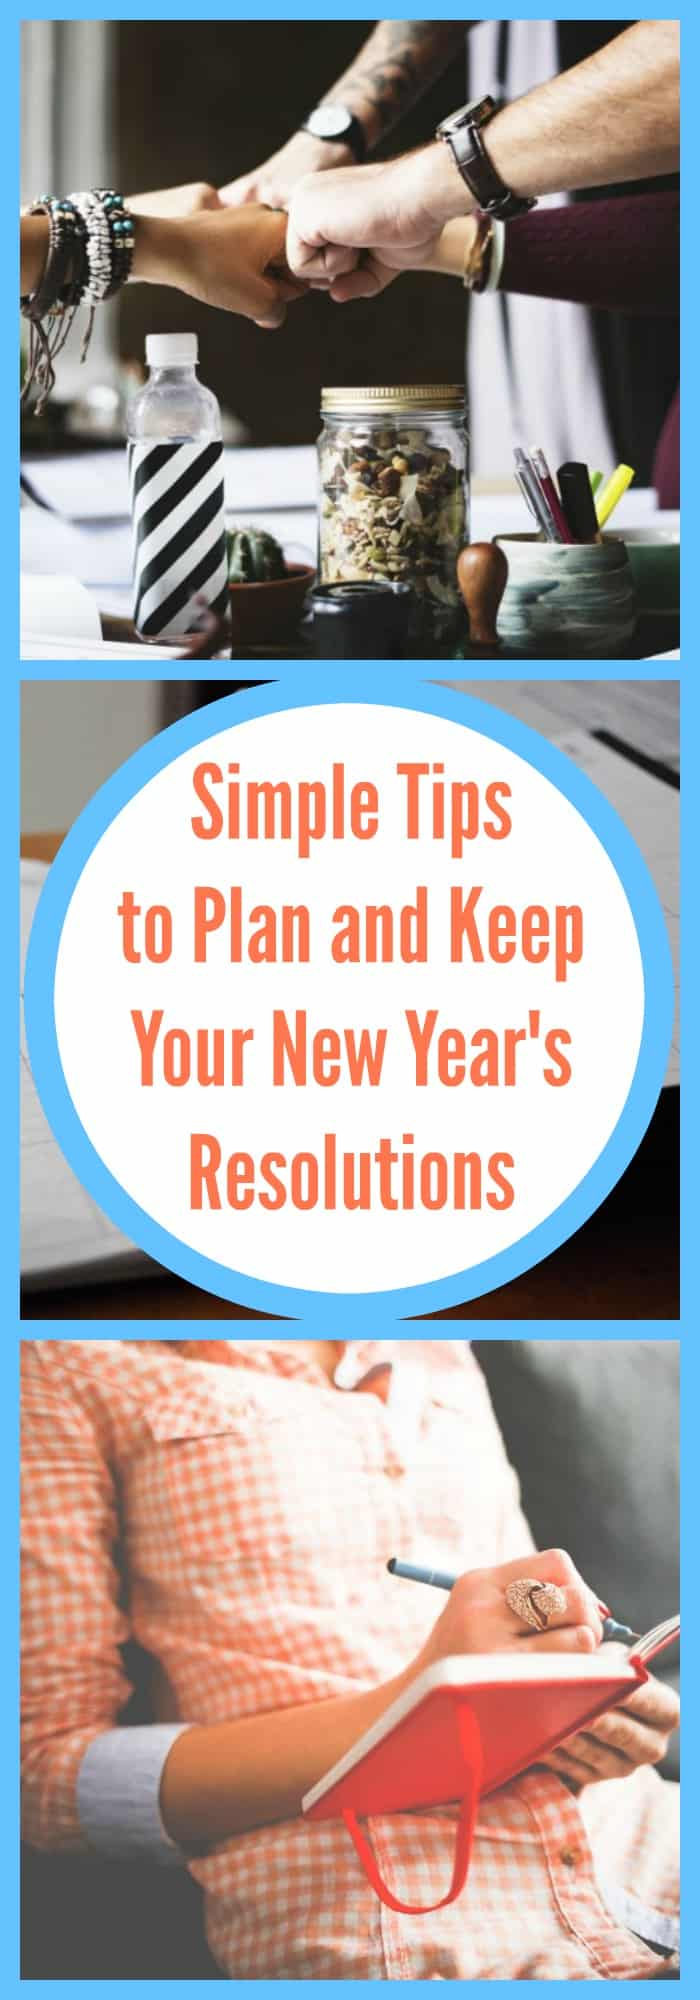 Simple Tips to Plan and Keep Your New Year's Resolutions